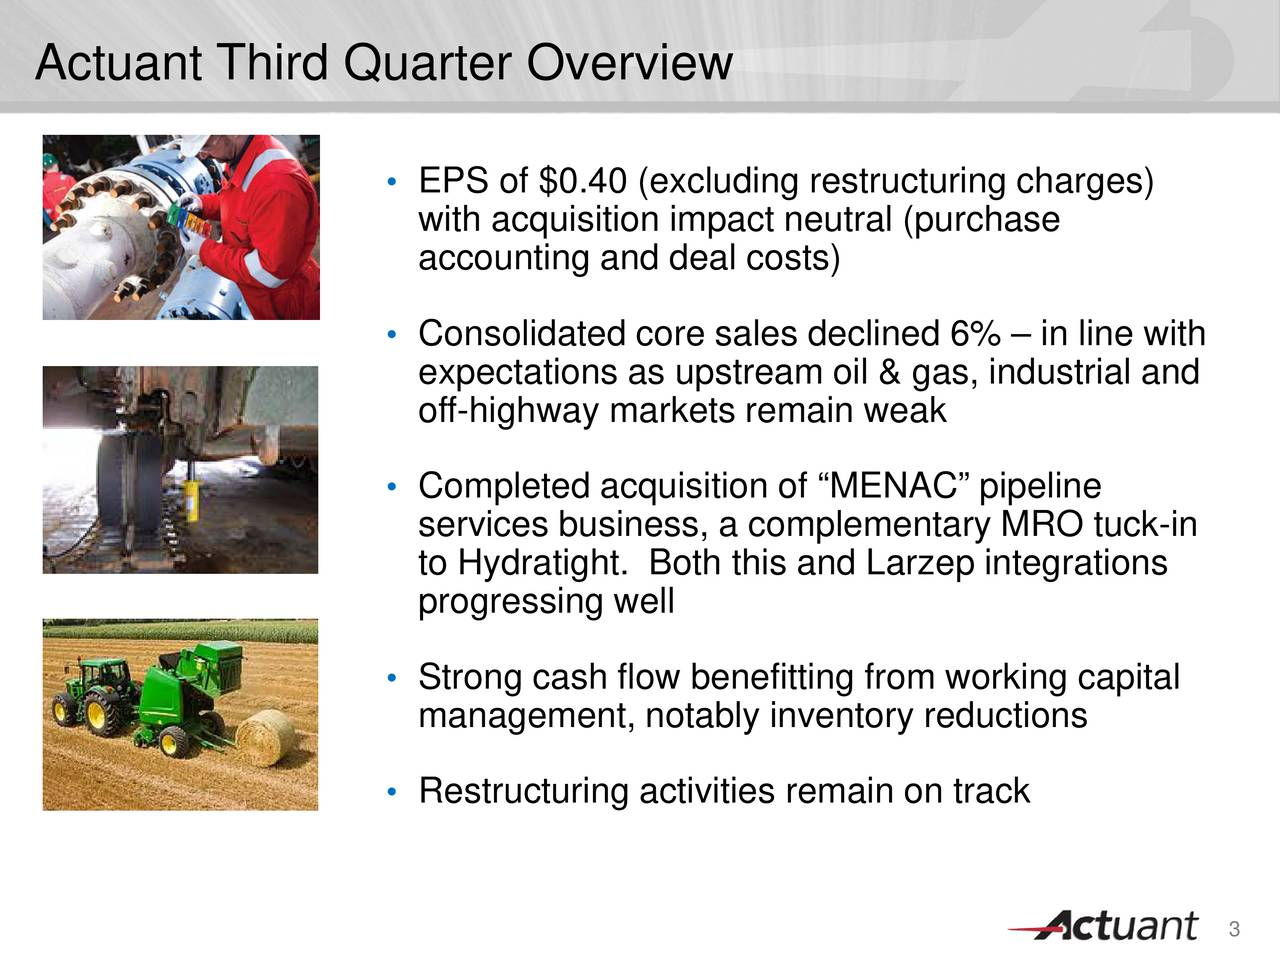 EPS of $0.40 (excluding restructuring charges) with acquisition impact neutral (purchase accounting and deal costs) Consolidated core sales declined 6%  in line with expectations as upstream oil & gas, industrial and off-highway markets remain weak Completed acquisition of MENAC pipeline services business, a complementary MRO tuck-in to Hydratight. Both this and Larzep integrations progressing well Strong cash flow benefitting from working capital management, notably inventory reductions Restructuring activities remain on track 3